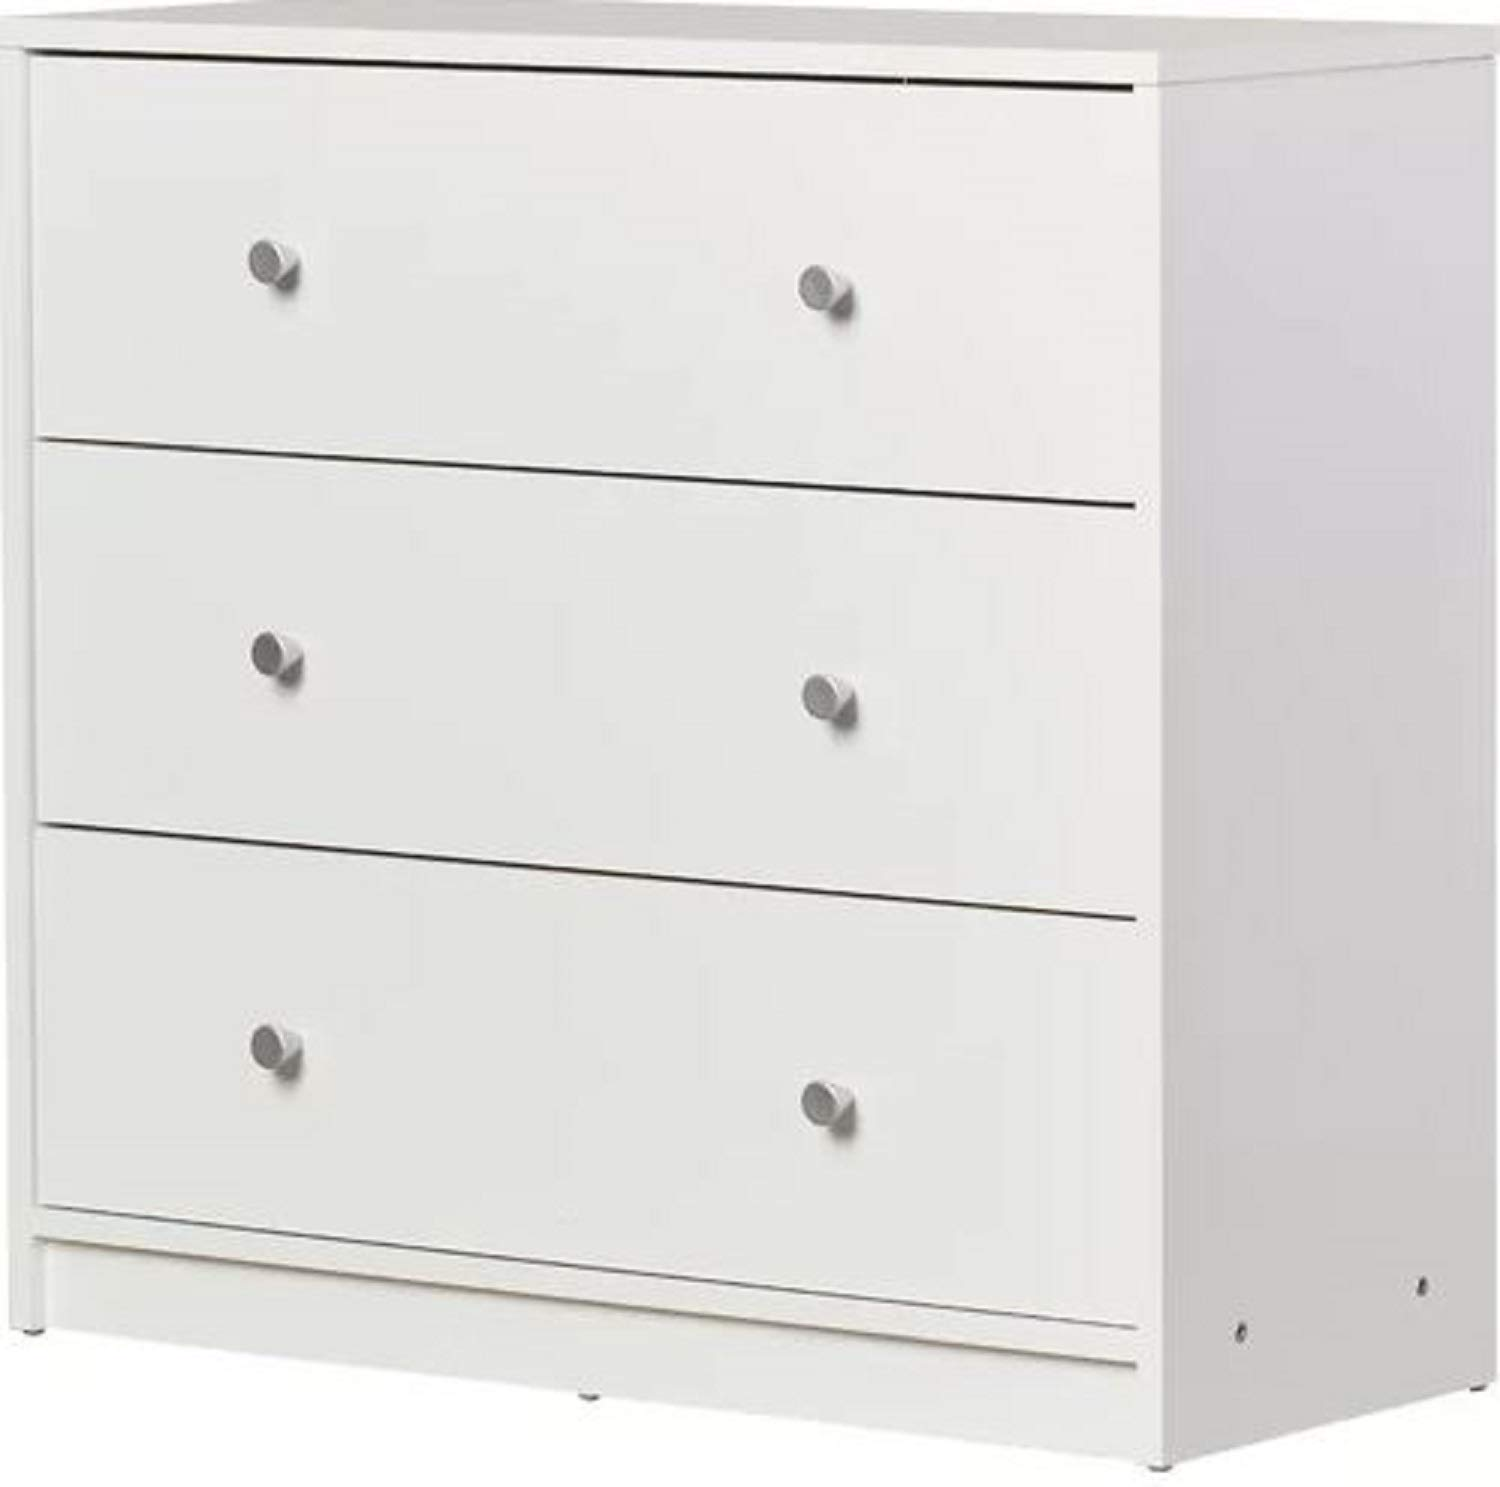 White 3 Drawer Bedroom Dresser. Wooden Slide Altus 3 Drawer Bedroom Dresser Chest Crafted from Particleboard Silver Handle Gloss Finish (Grey)